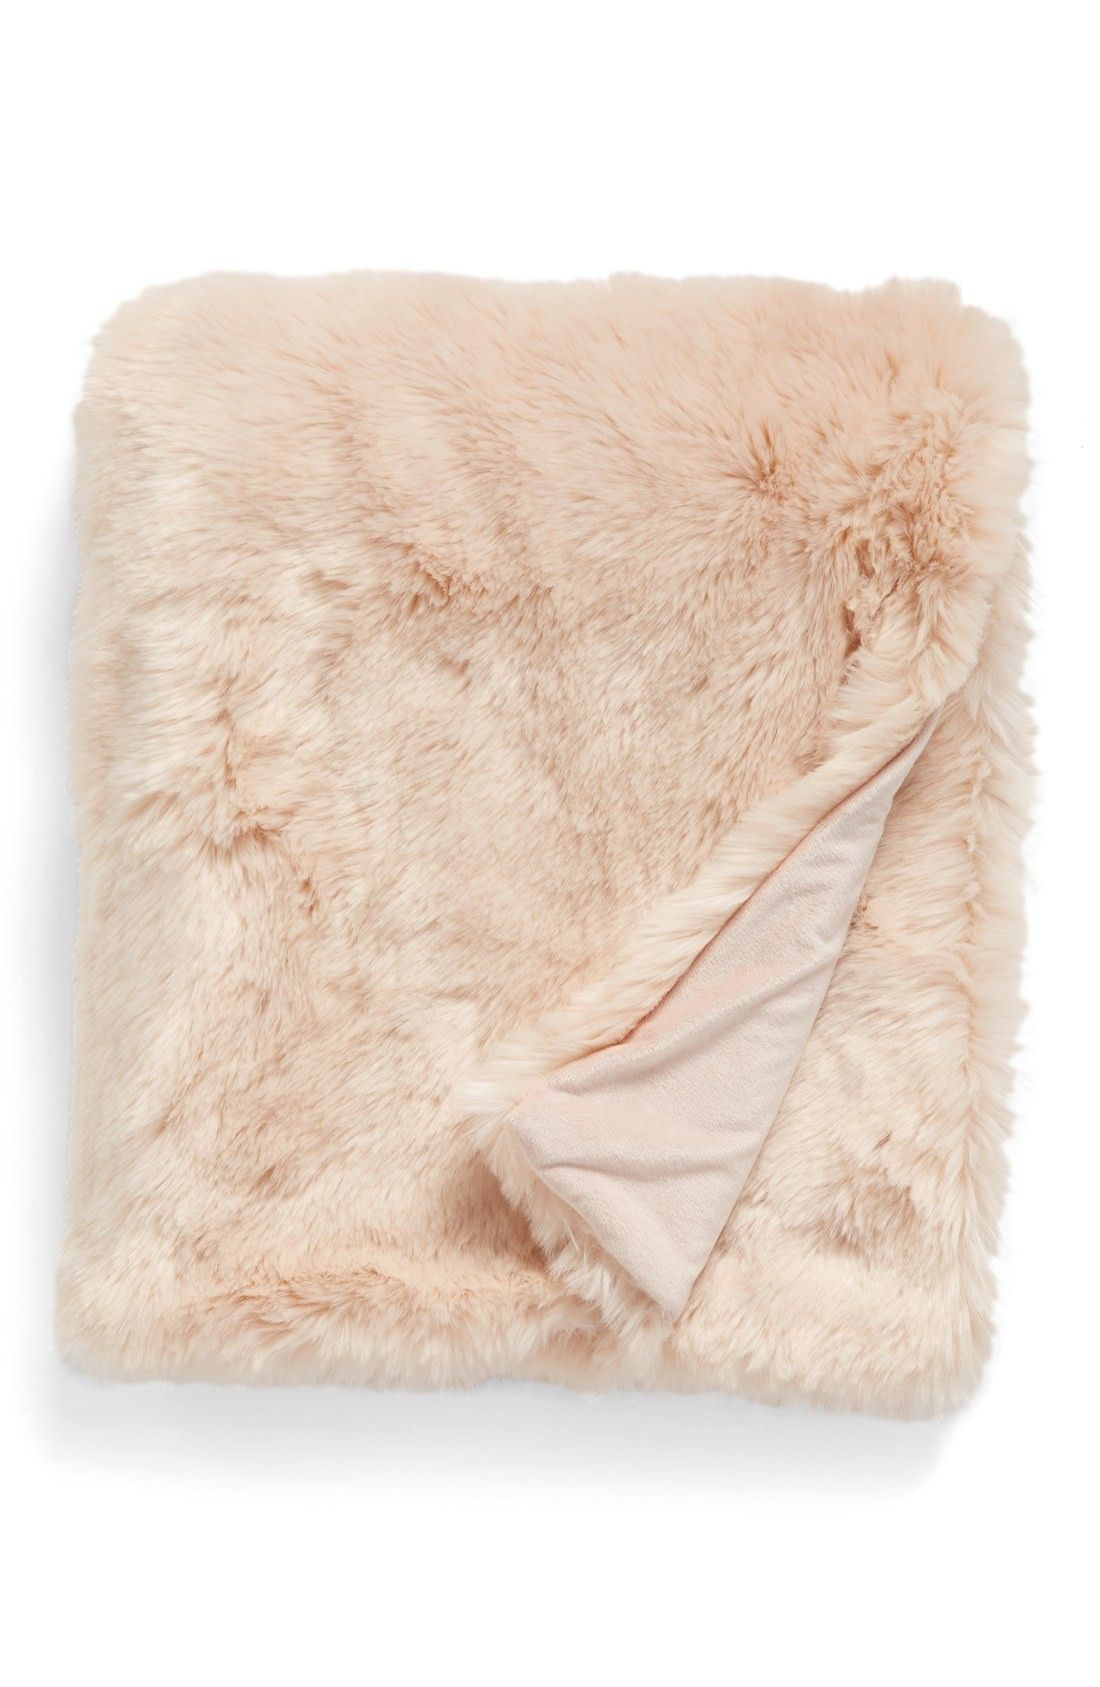 Cuddle Up Faux Fur Throw Blanket  149 - Christmas gift ideas for women 705adffcff